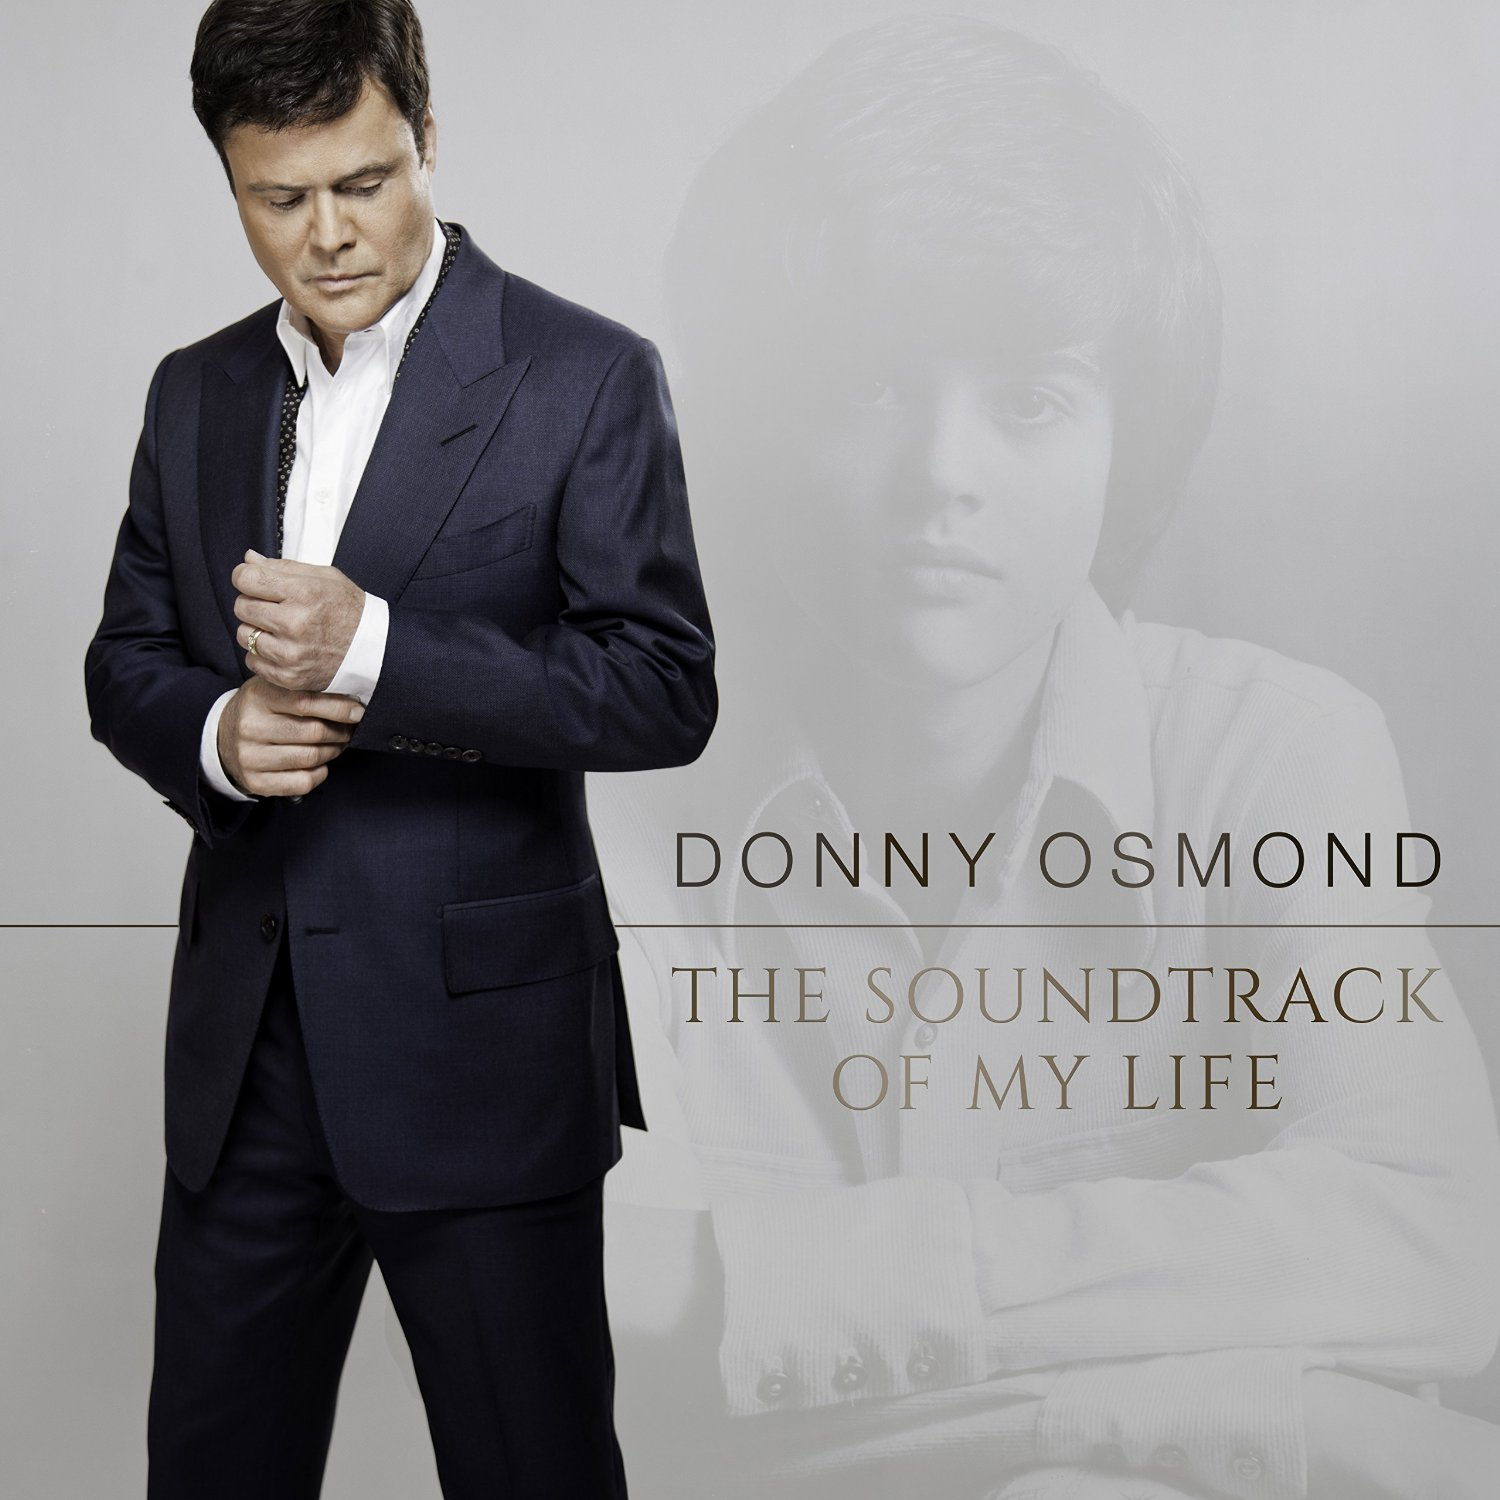 Donny Osmond - Soundtrack of My Life (Music CD)